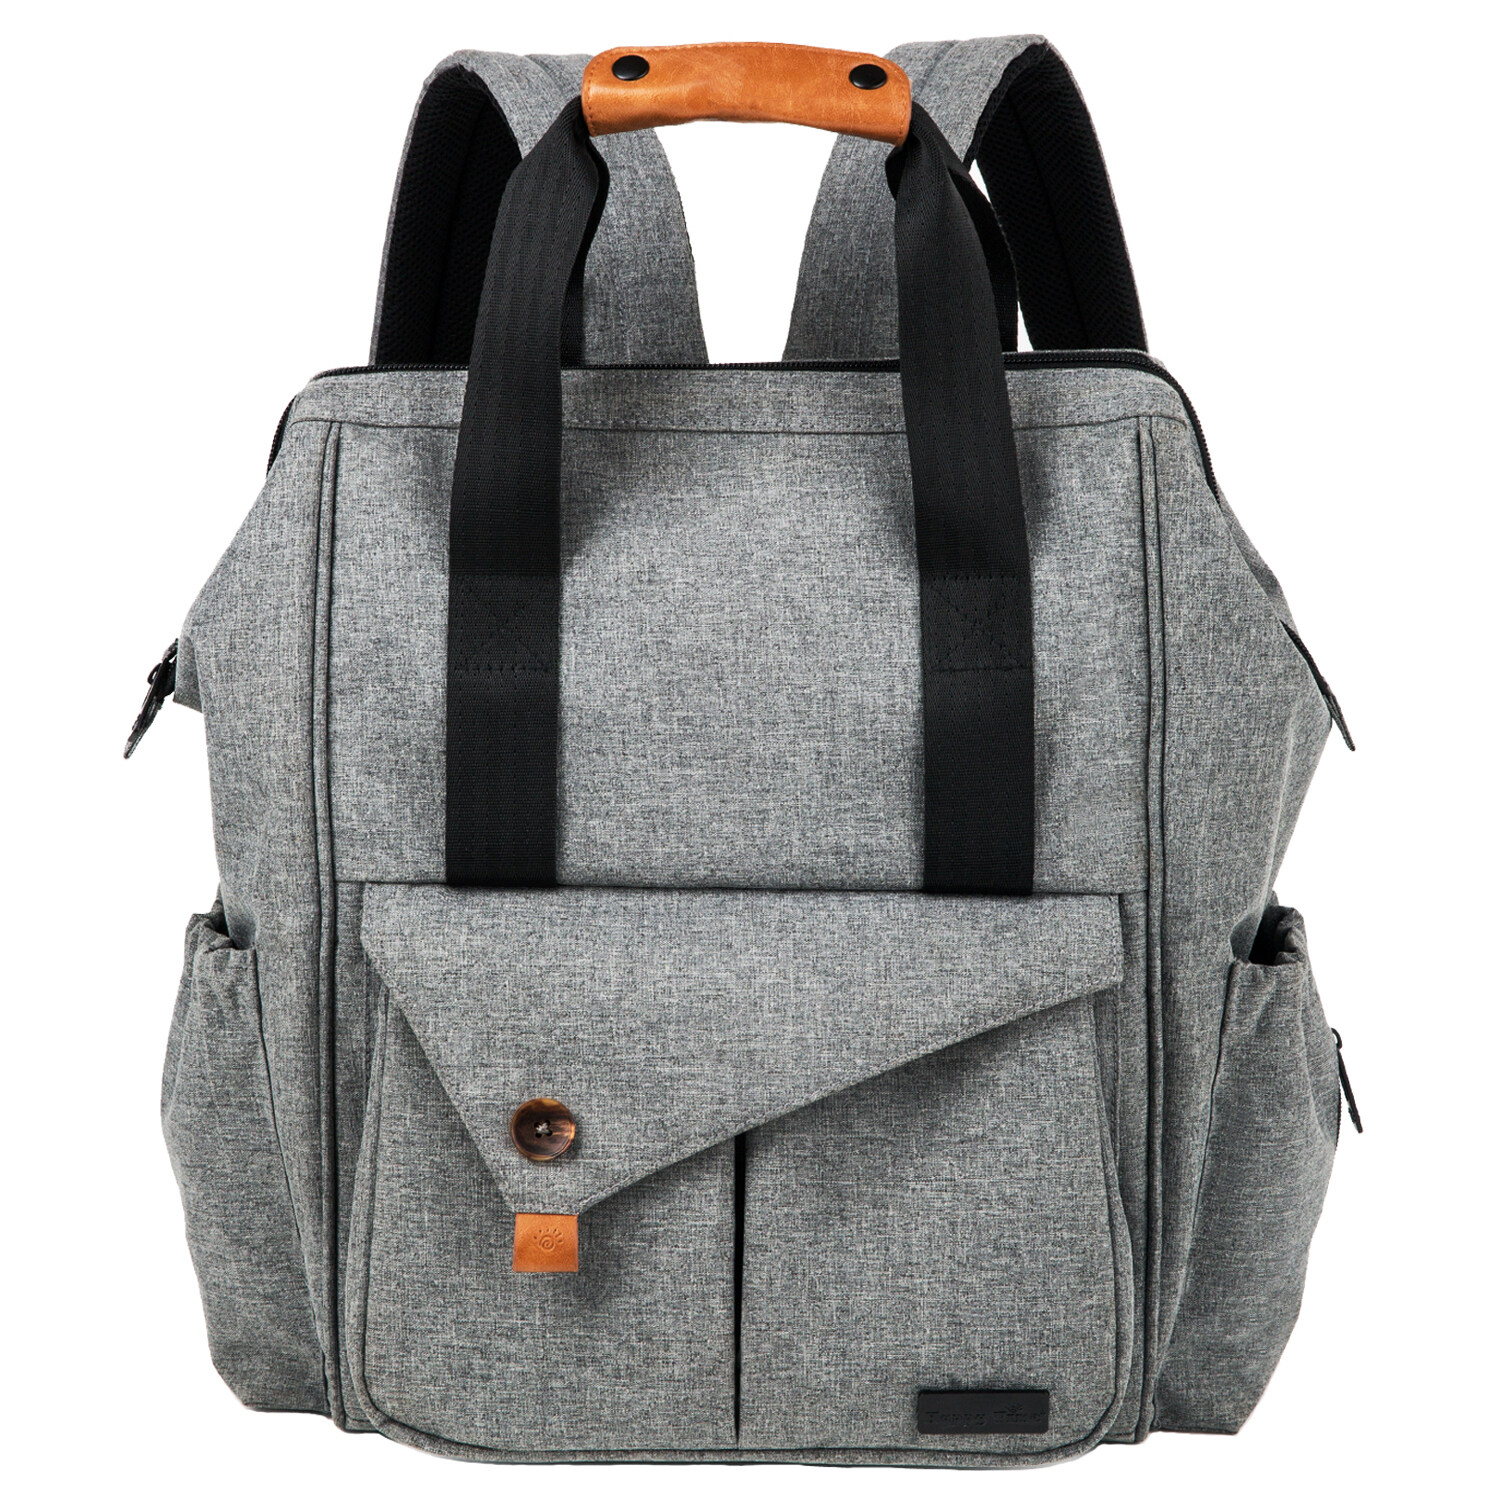 1becbcf54ab7 HapTim Multi-function Baby Diaper Bag Backpack - Nylon Fabric Waterproof  for Moms & Dads(Gray-5279)